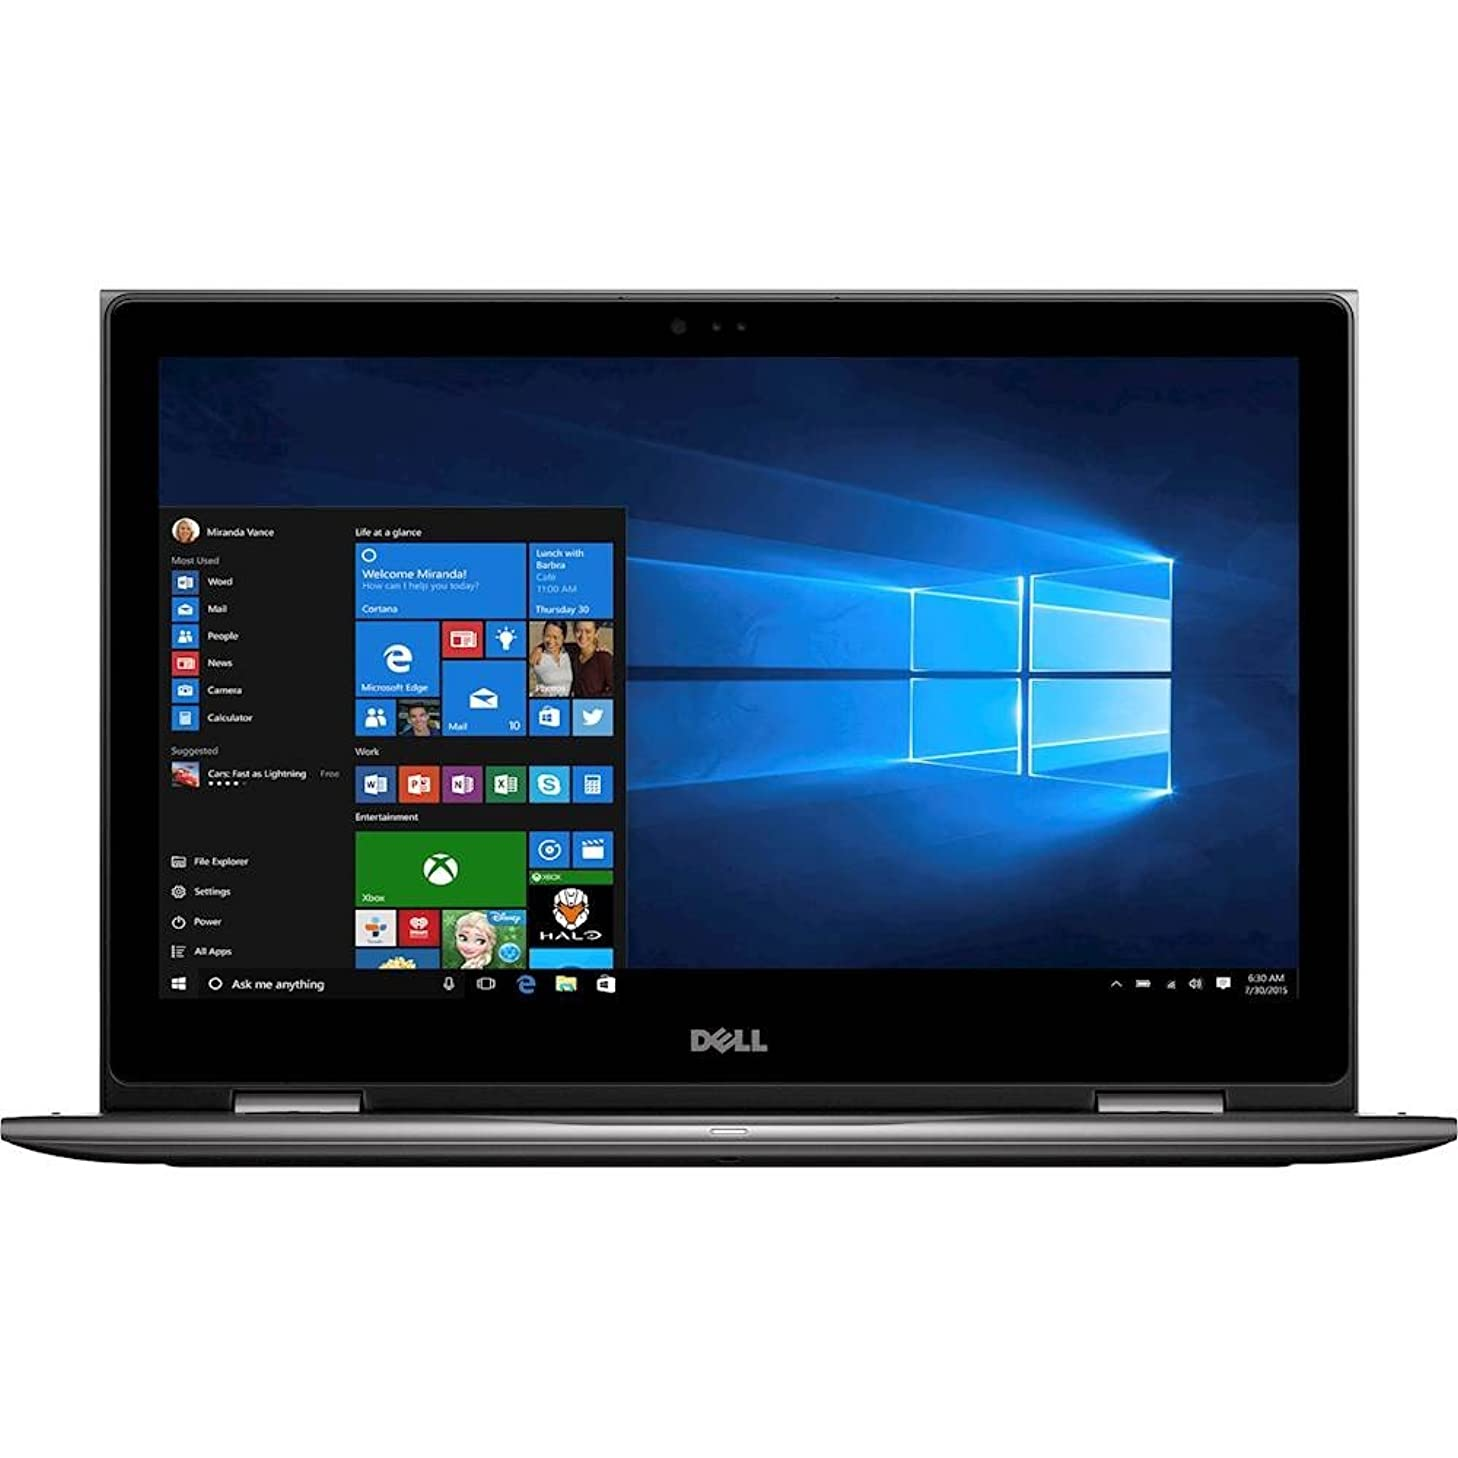 Dell Inspiron i5 2-in-1 SSD Premium Laptop Computer 2018, FHD IPS 15.6